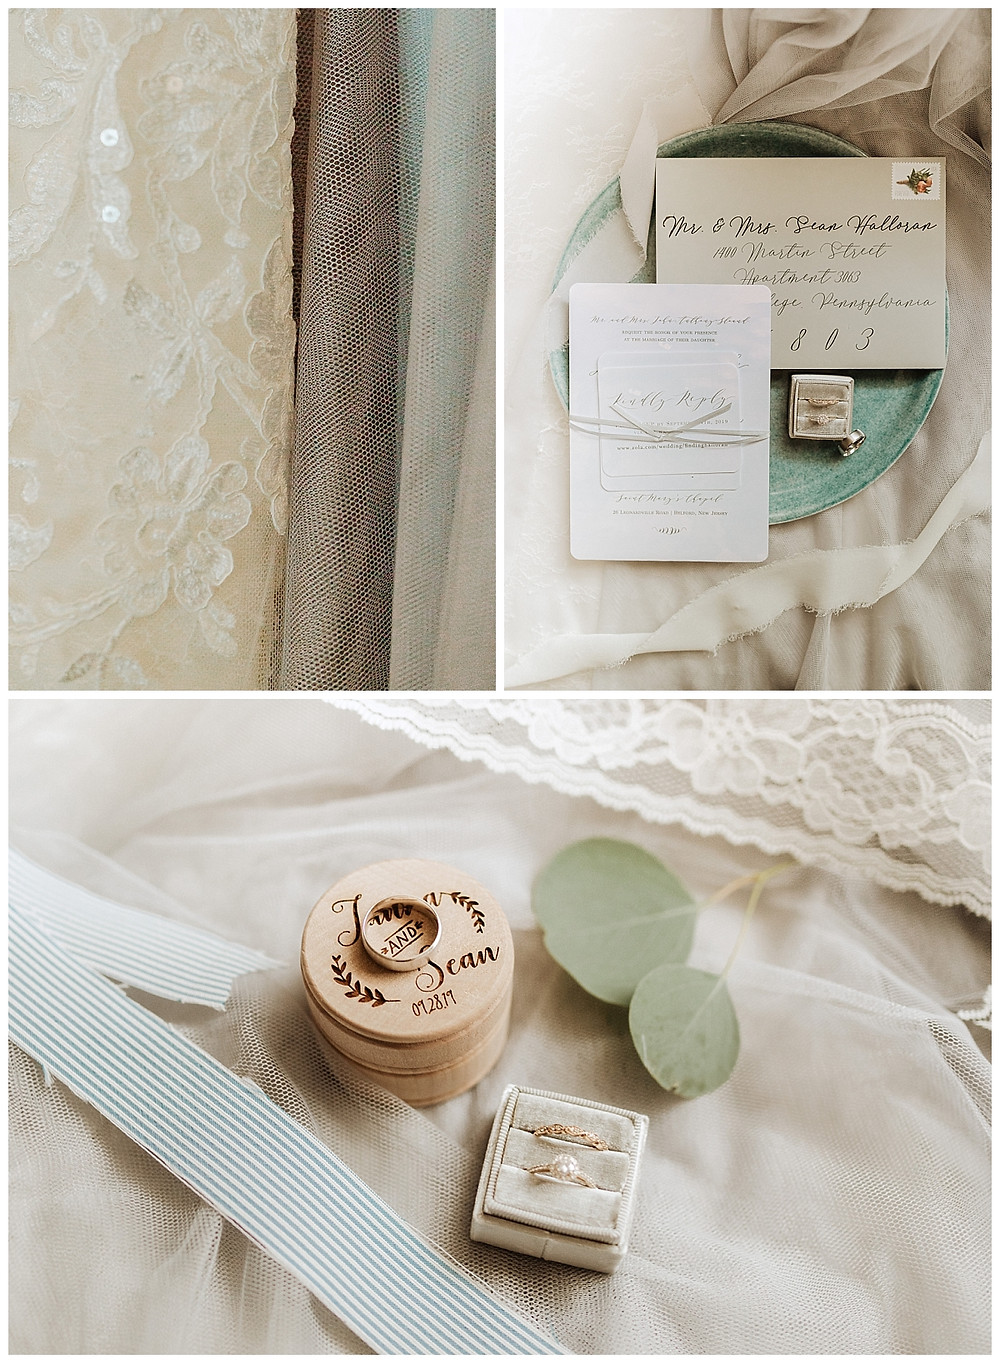 Lace Wedding Dress Detail and Cream Wedding Stationary